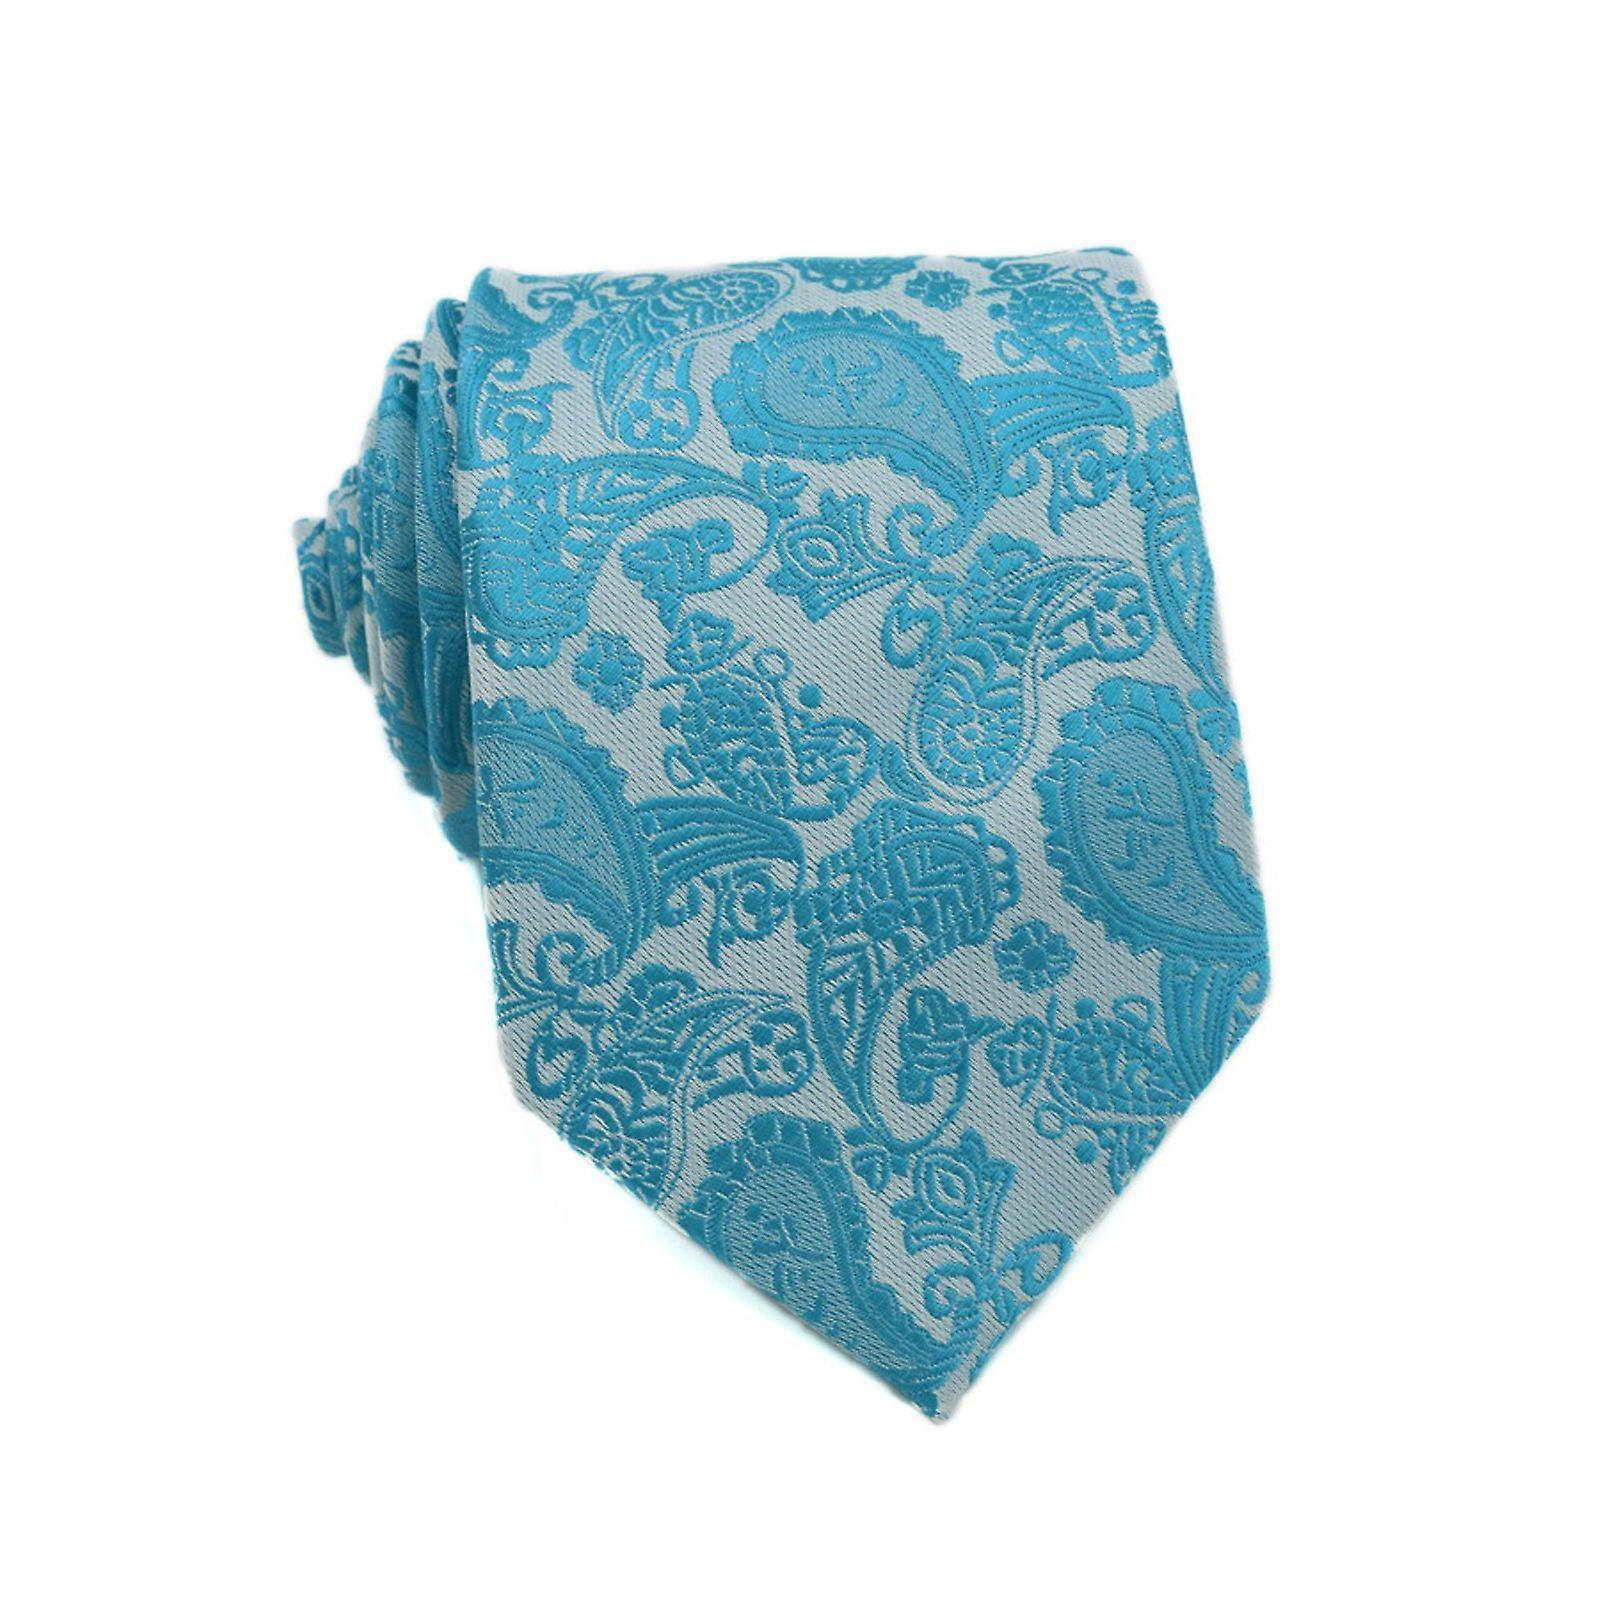 Teal & turquoise paisley event tie & pocket square set